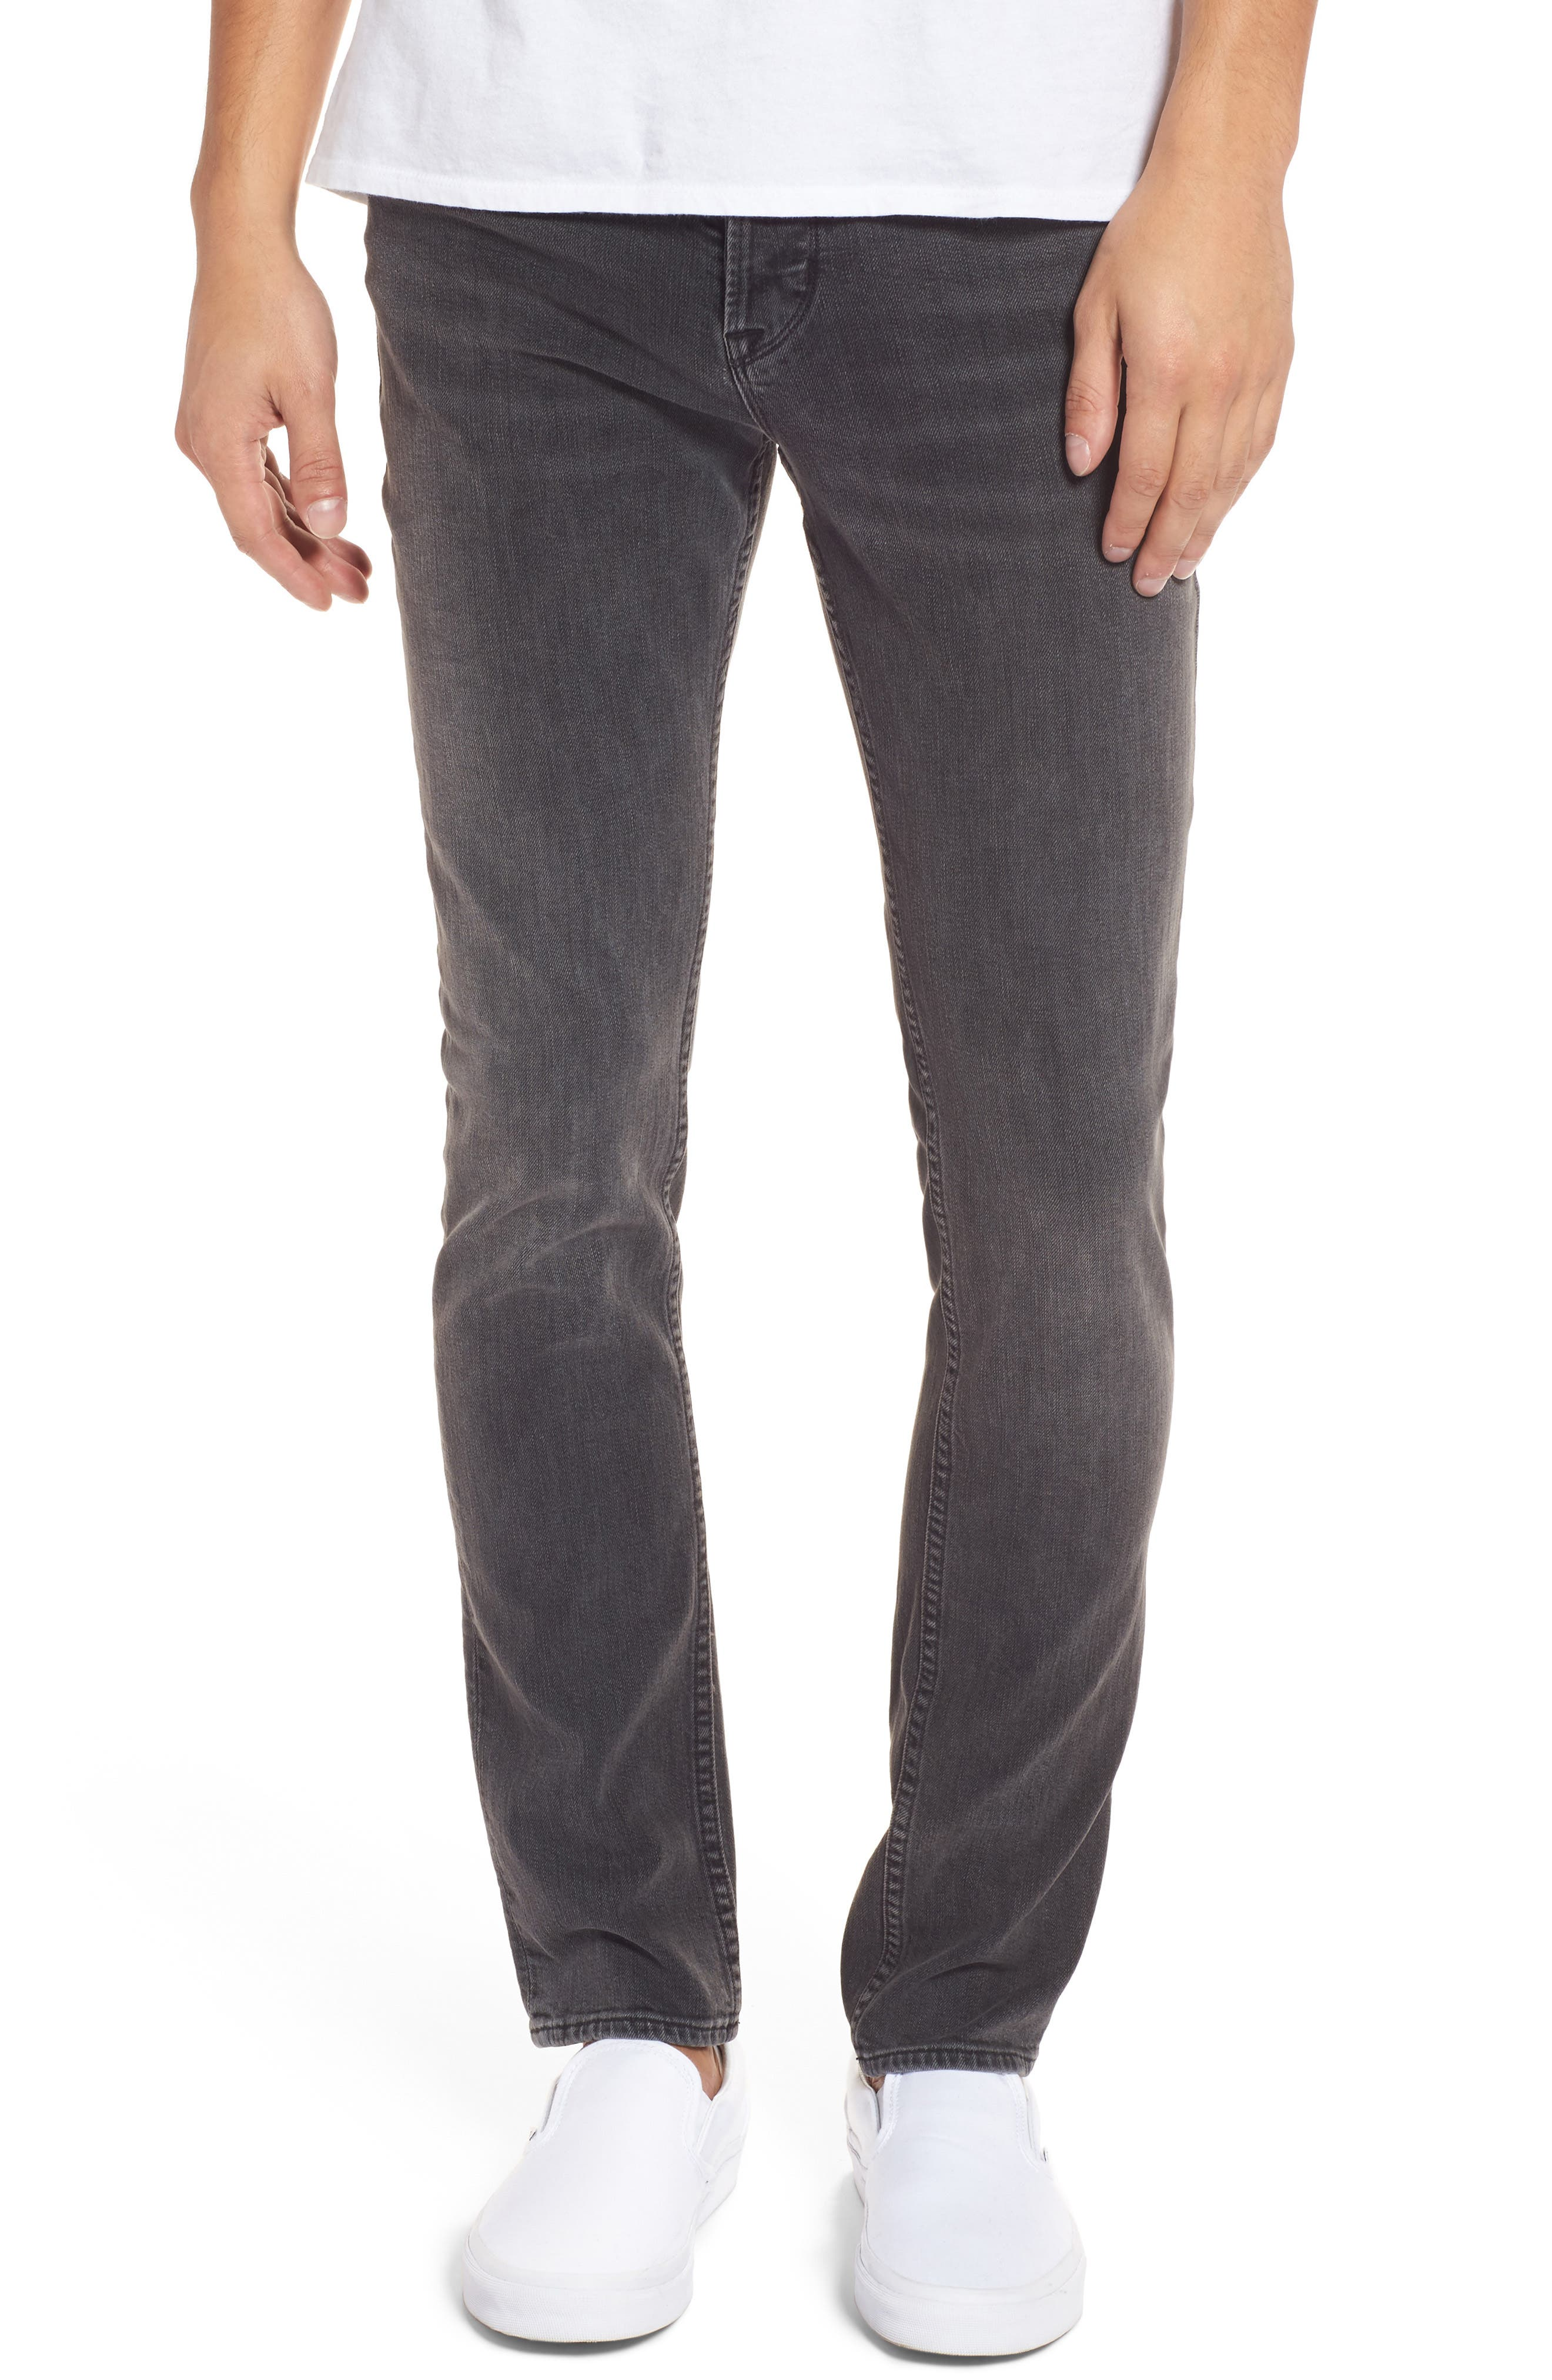 Main Image - Hudson Jeans Axl Skinny Fit Jeans (Oxidize)